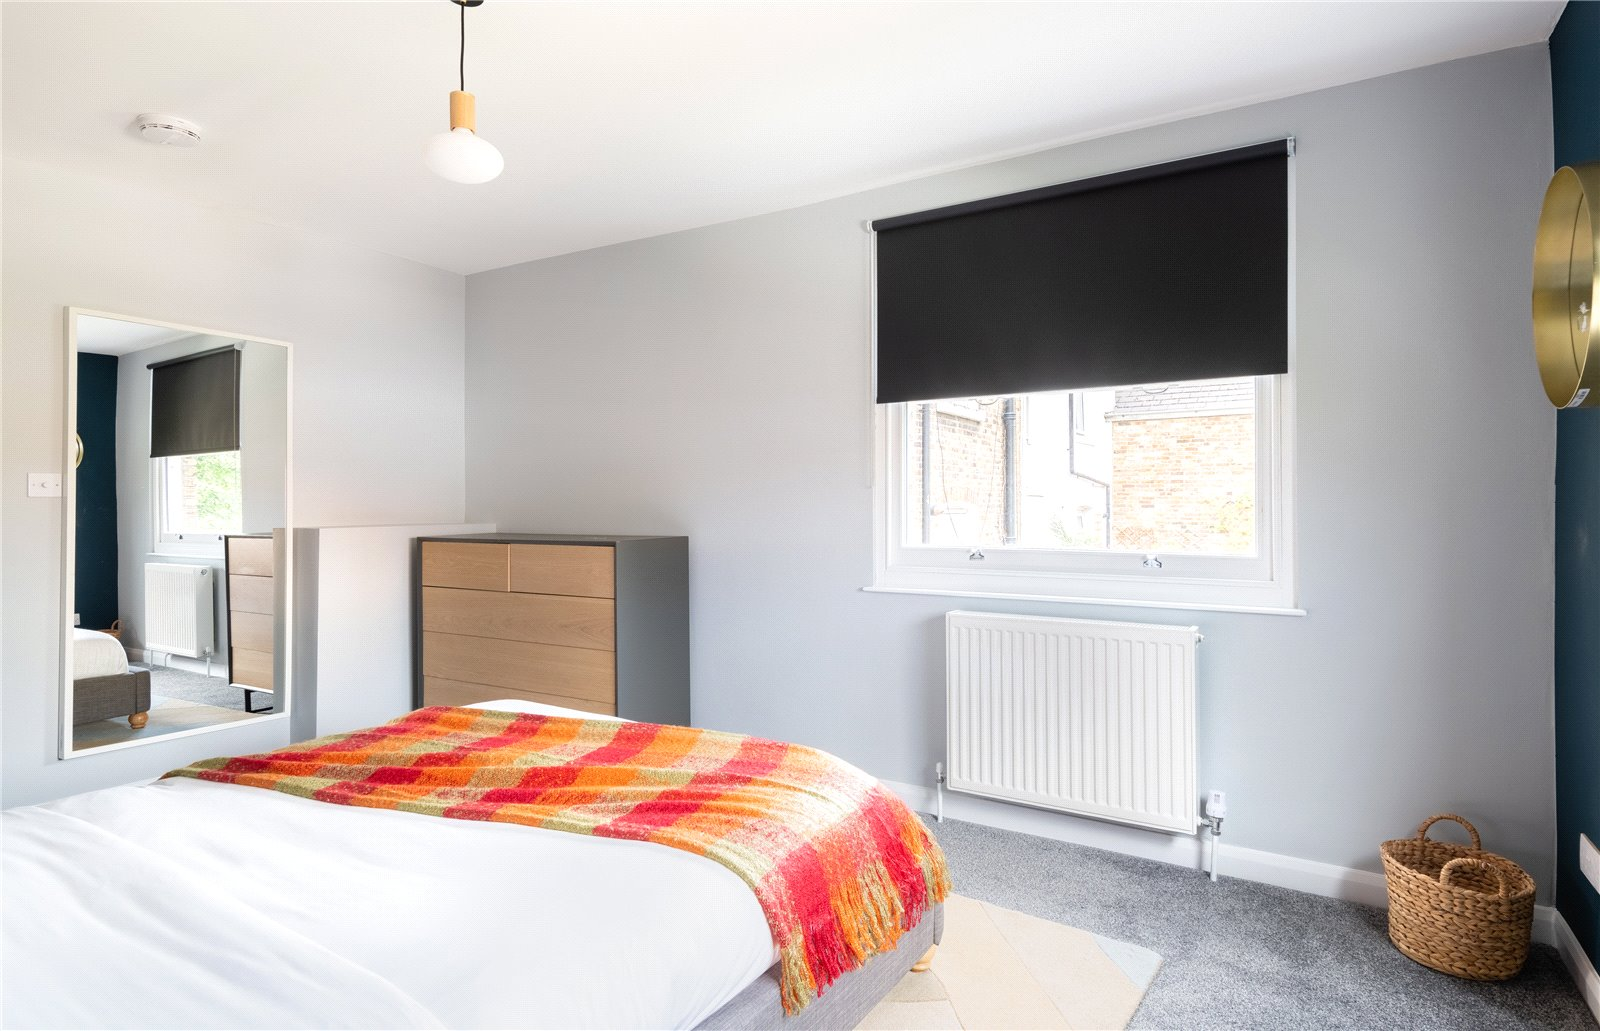 3 bed apartment for sale in Kentish Town, NW5 4DA  - Property Image 8